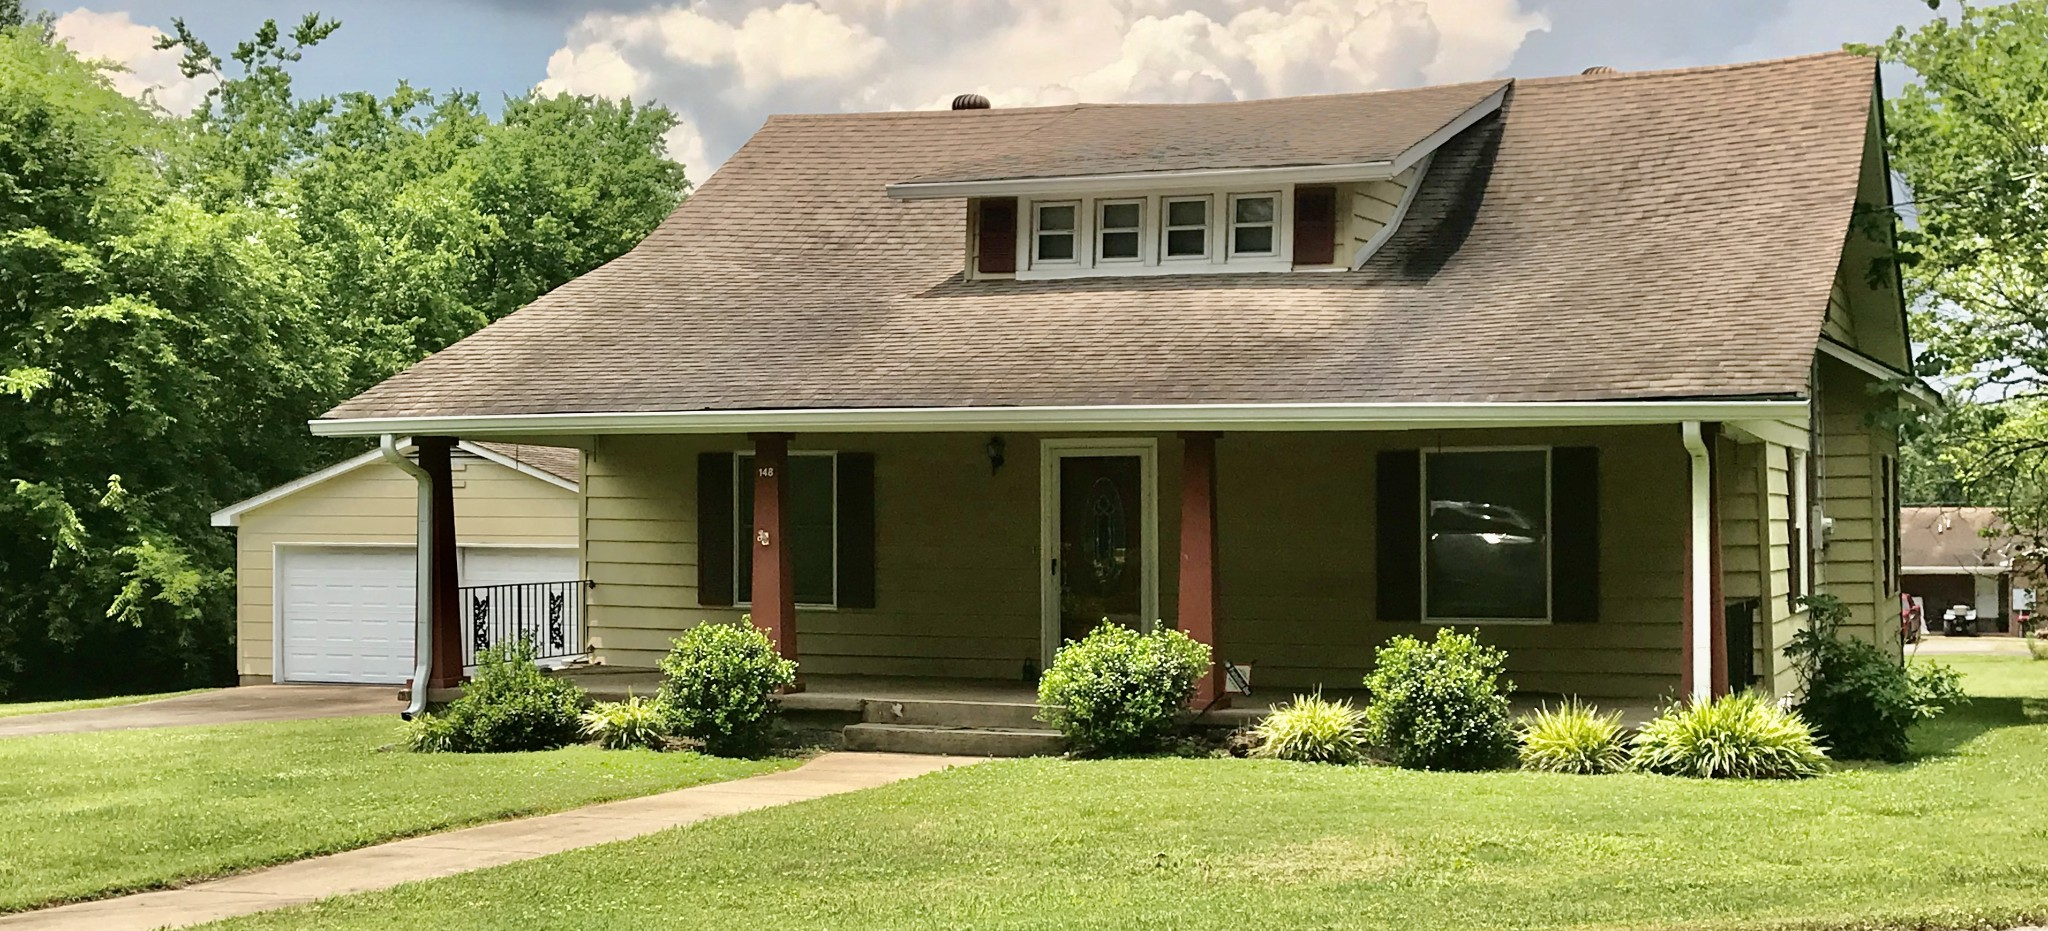 148 Waters Ave Property Photo - Watertown, TN real estate listing